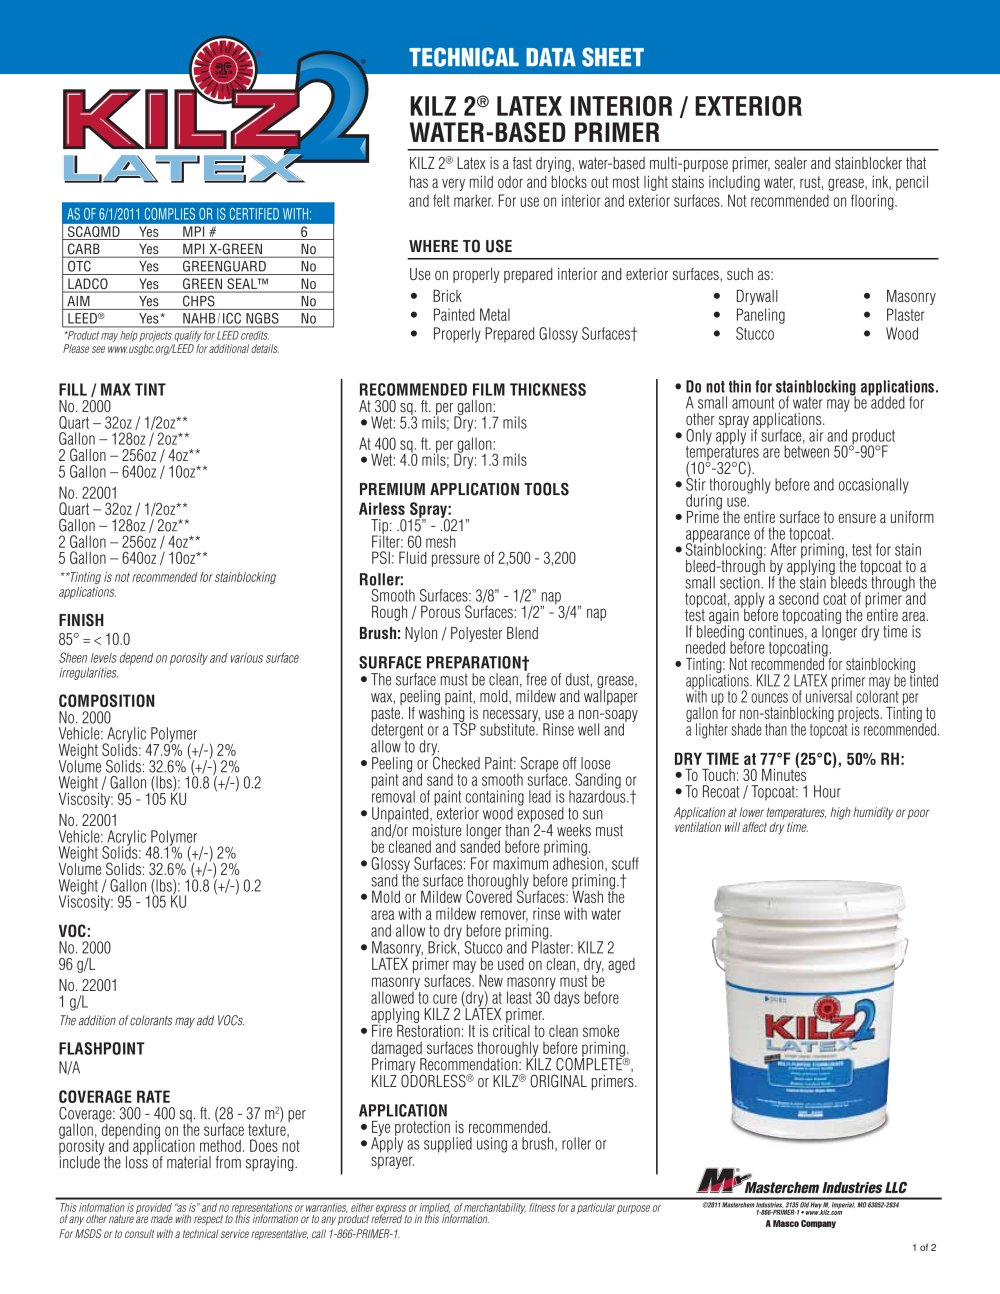 KILZ 2® LATEX INTERIOR / EXTERIOR WATER-BASED PRIMER - KILZ - PDF ...